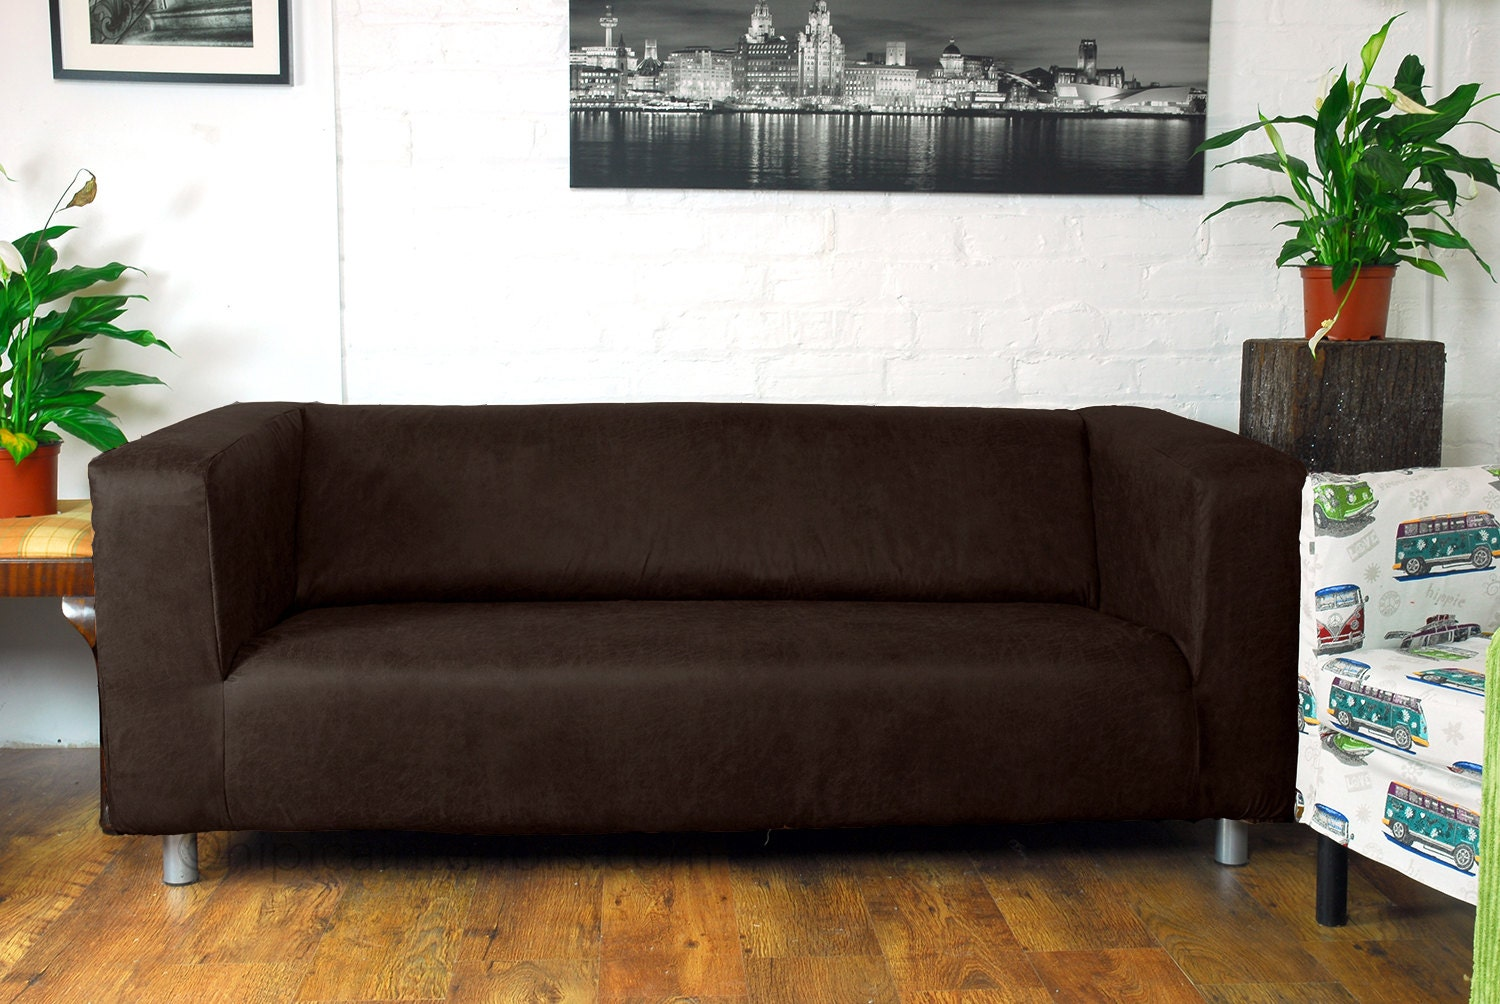 Ikea Klippan 2 Seat Love Seat Slip Cover In Dark Brown